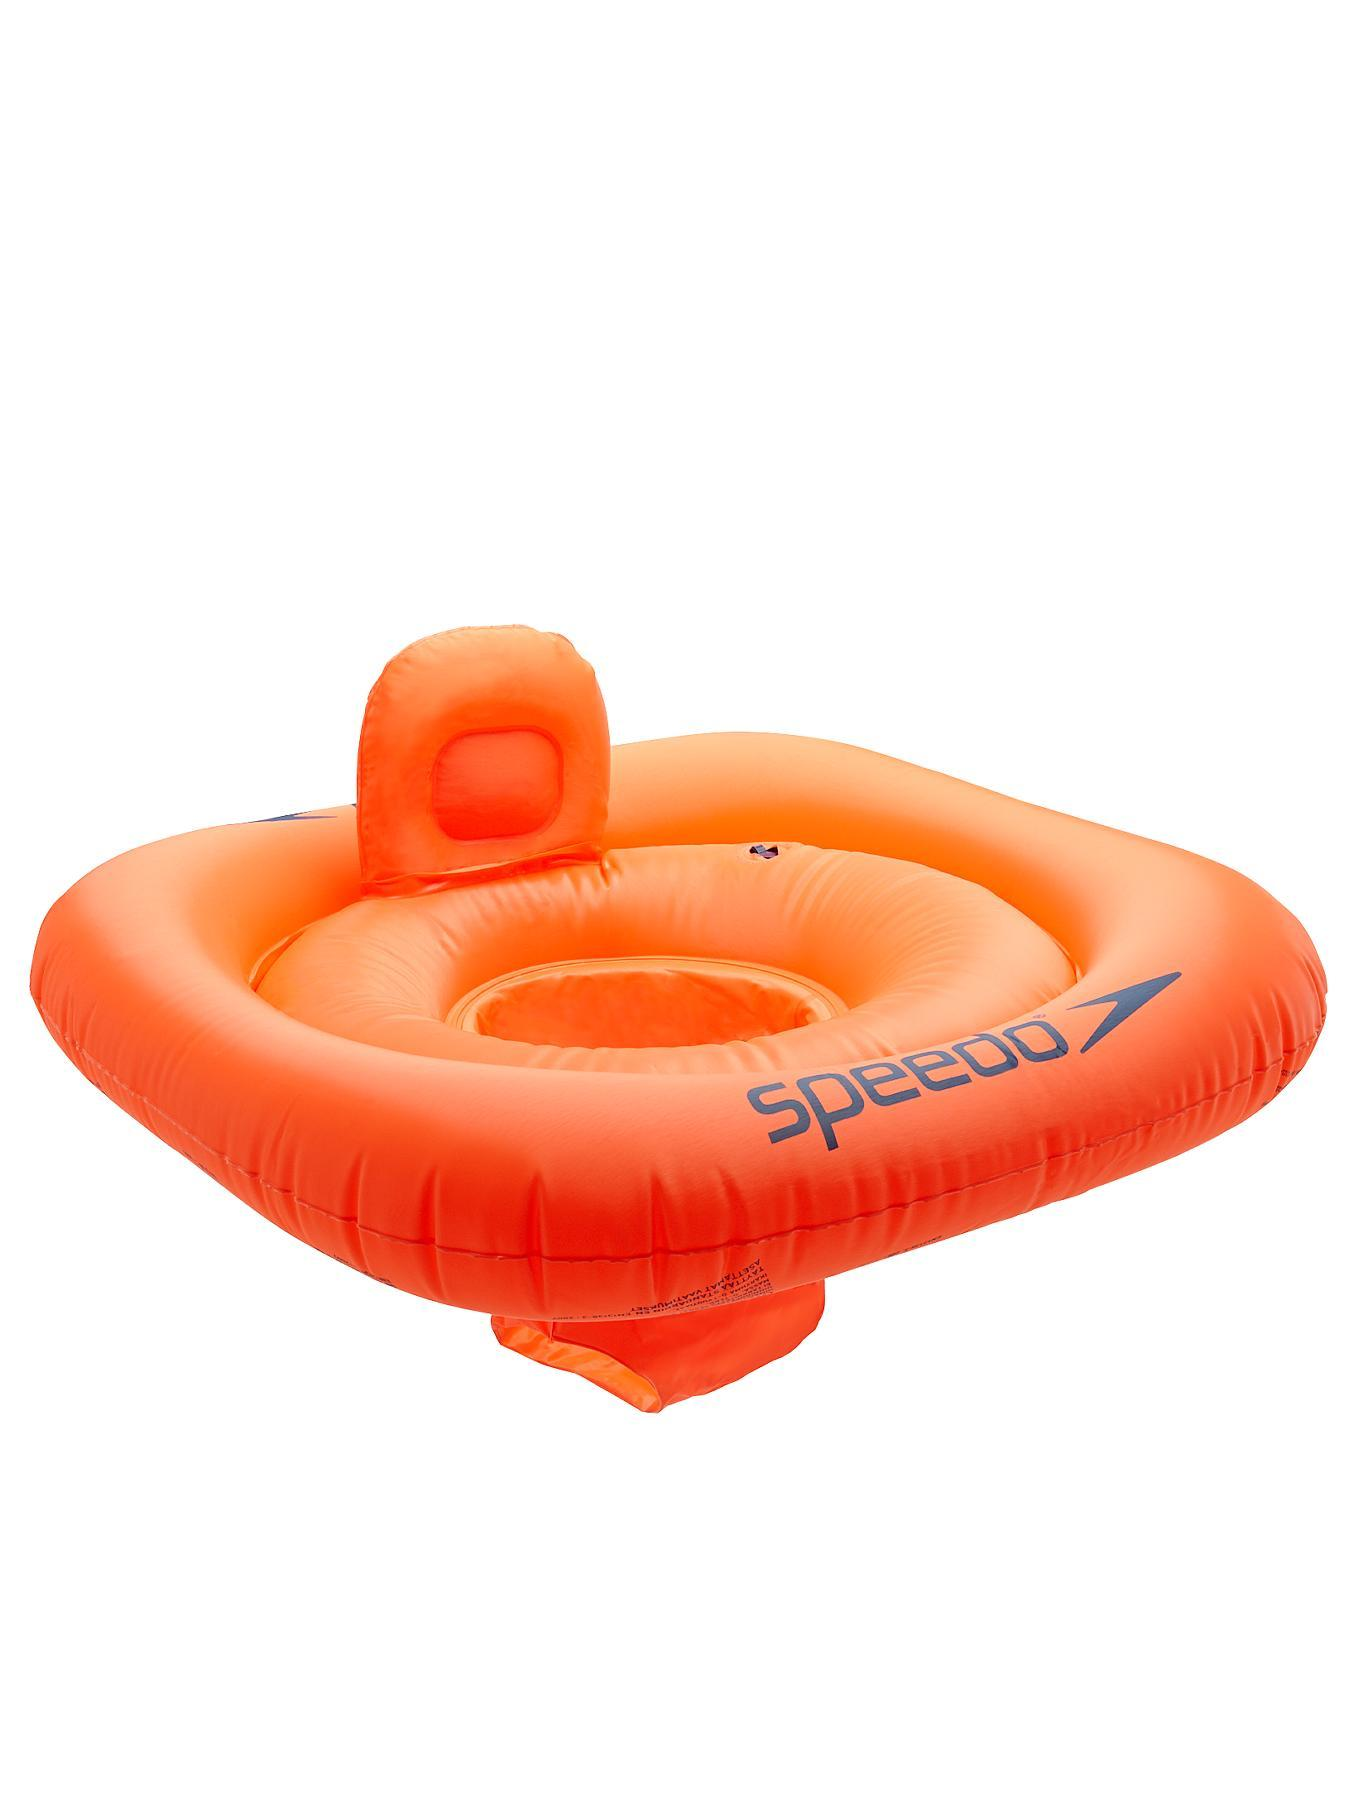 Speedo Baby Swim Seat